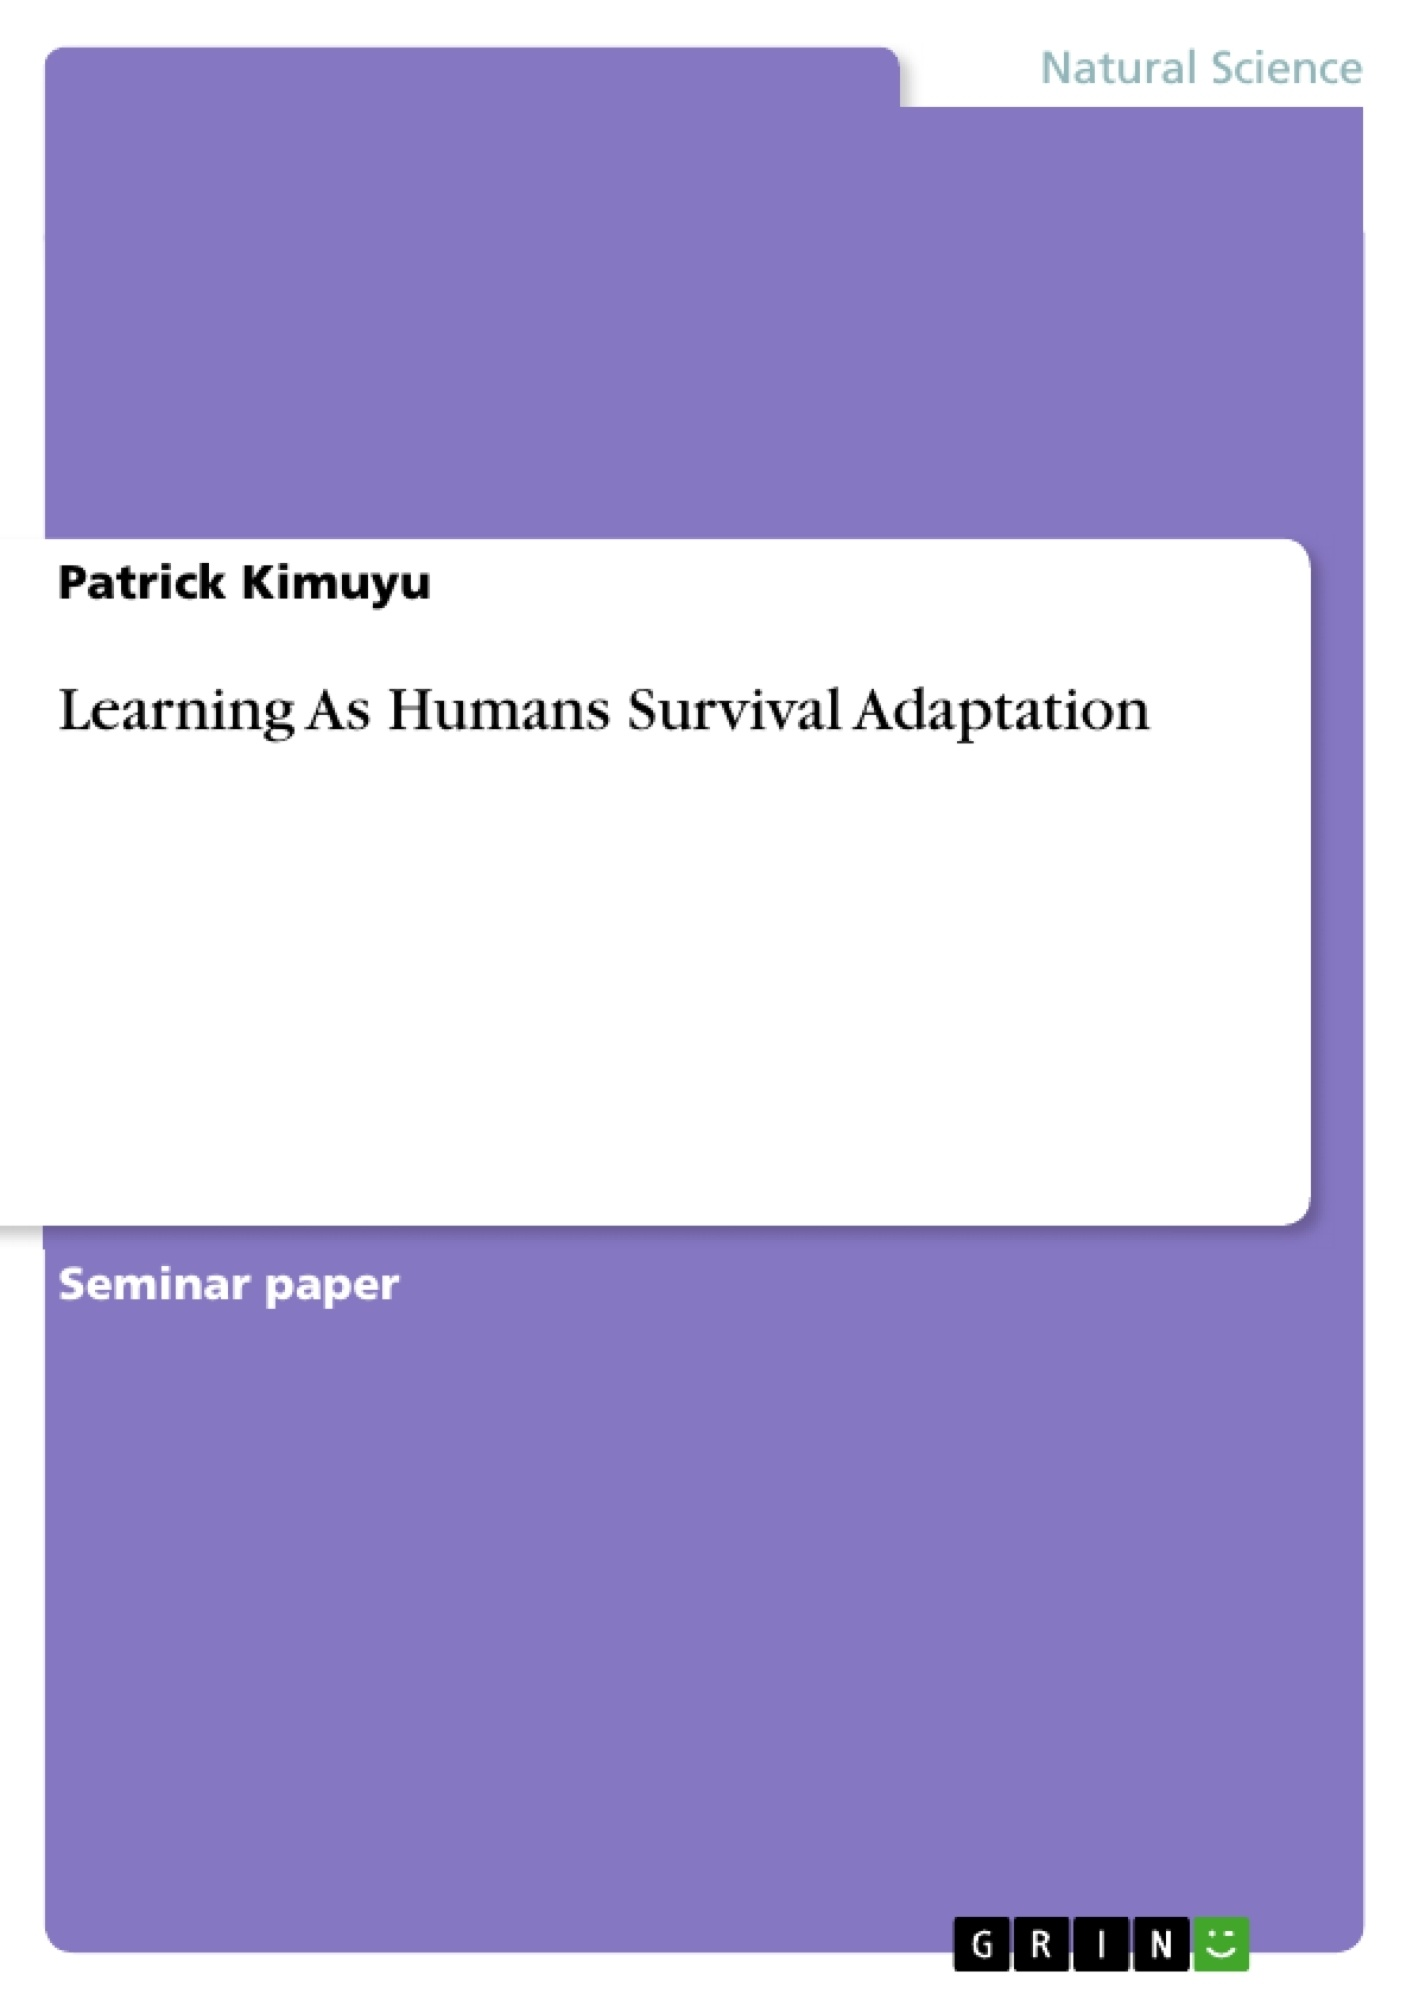 Title: Learning As Humans Survival Adaptation